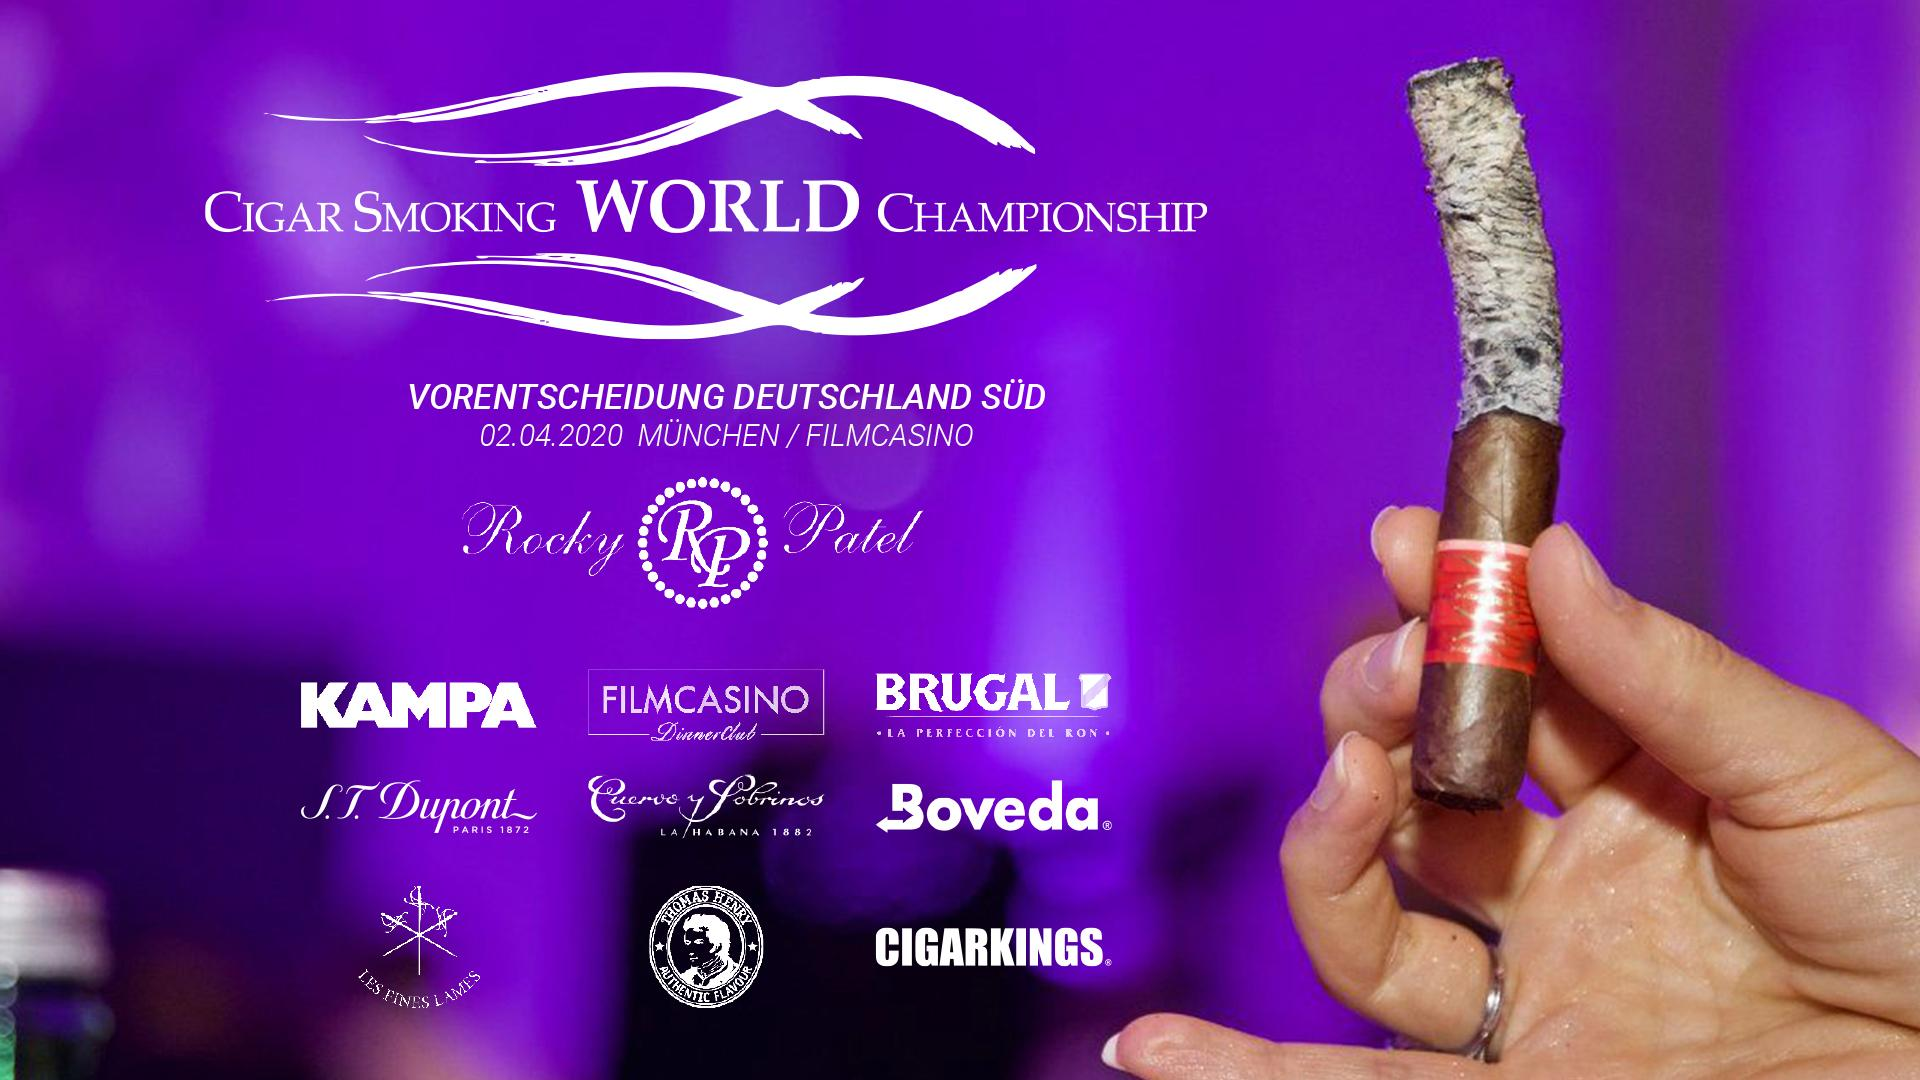 Cigar Smoking World Championship Munich Germany